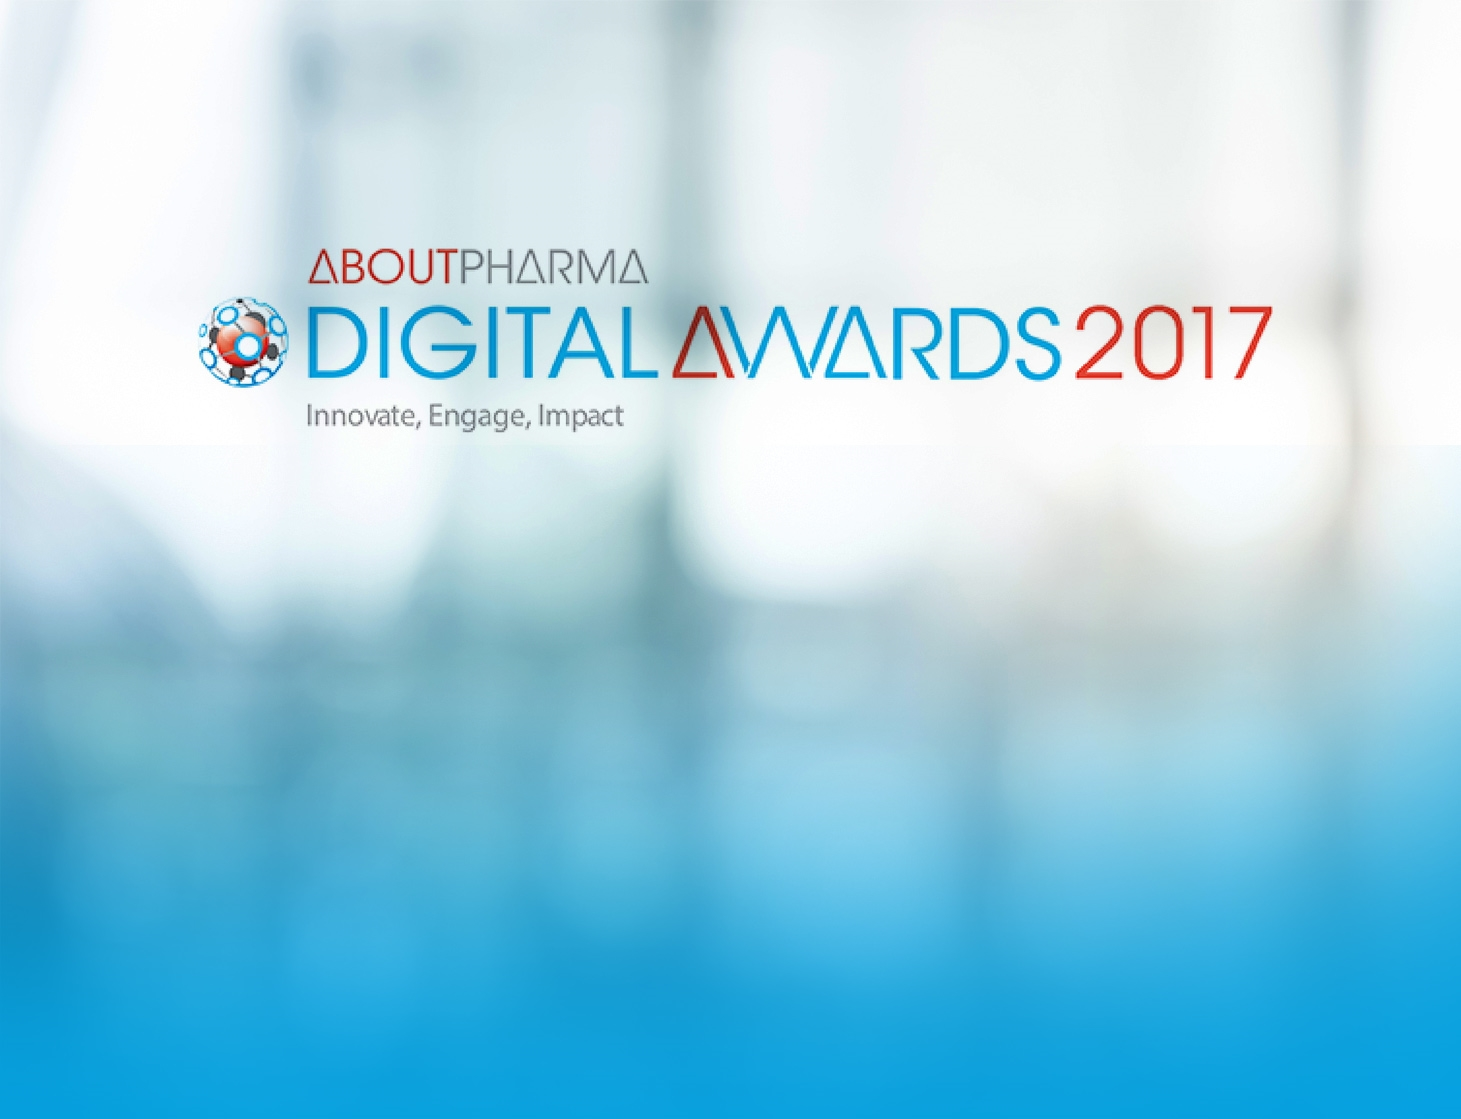 Aboutpharma Digital Awards 2017: Innovate, Engage, Impact